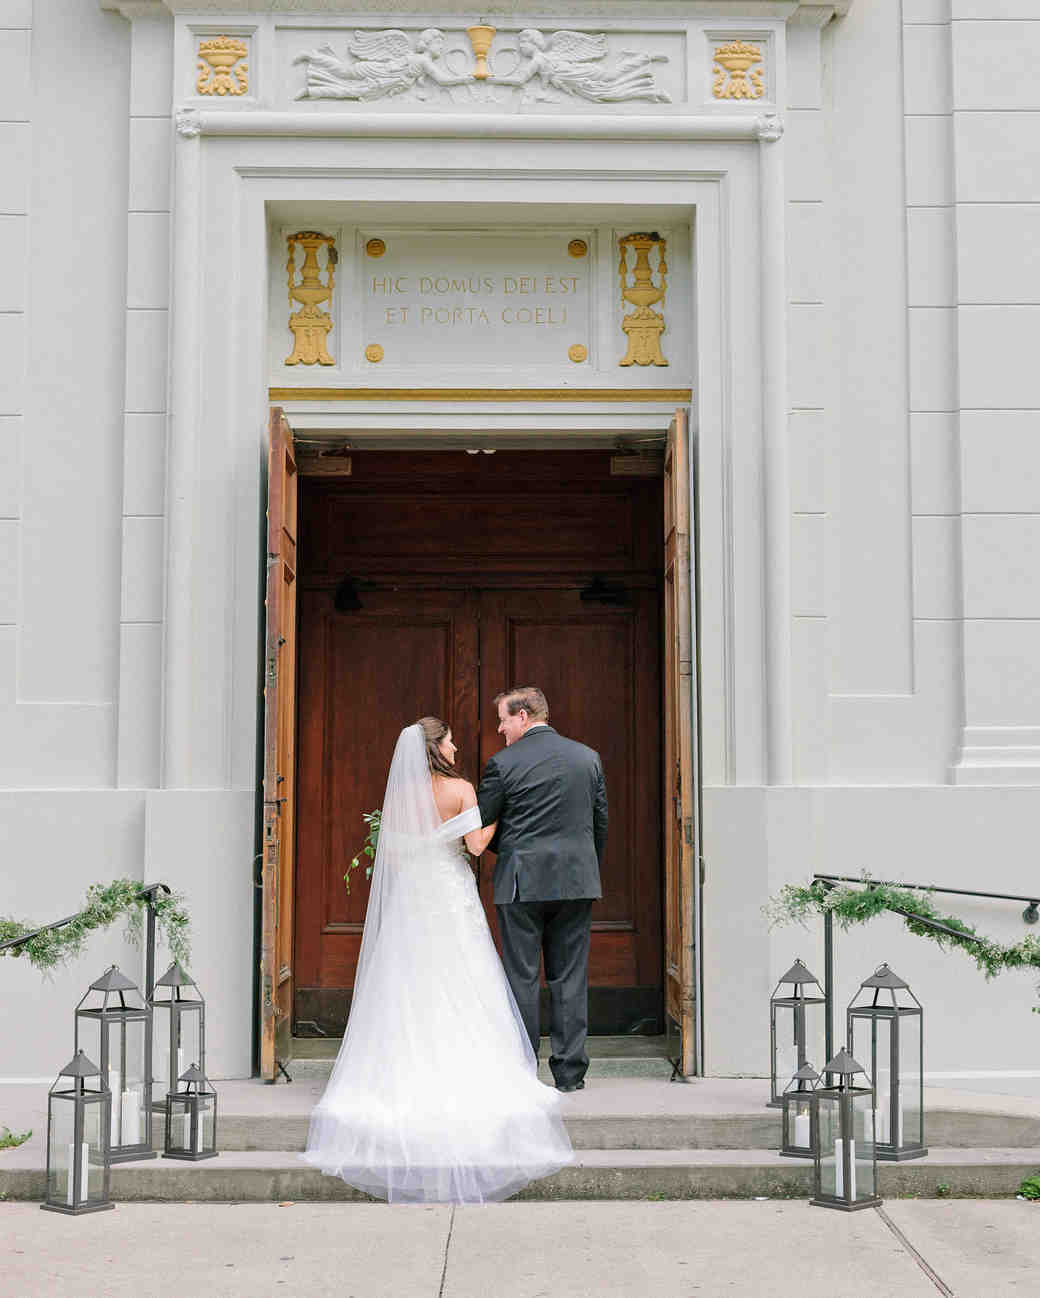 kate austin wedding processional church doorway